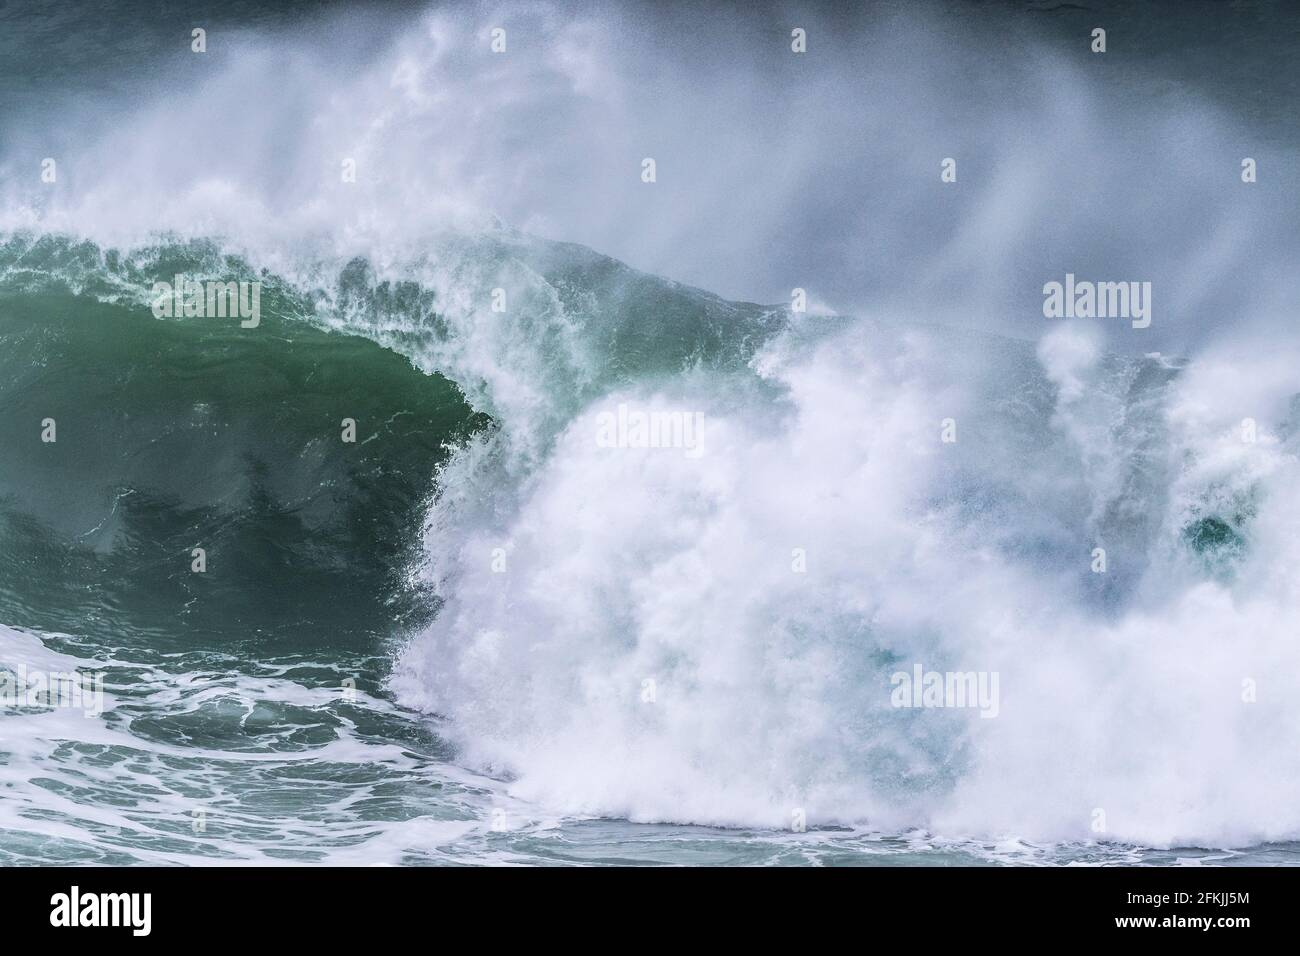 A wild wave breaking on the Cribbar Reef off Towan Head in Newquay in Cornwall. Stock Photo